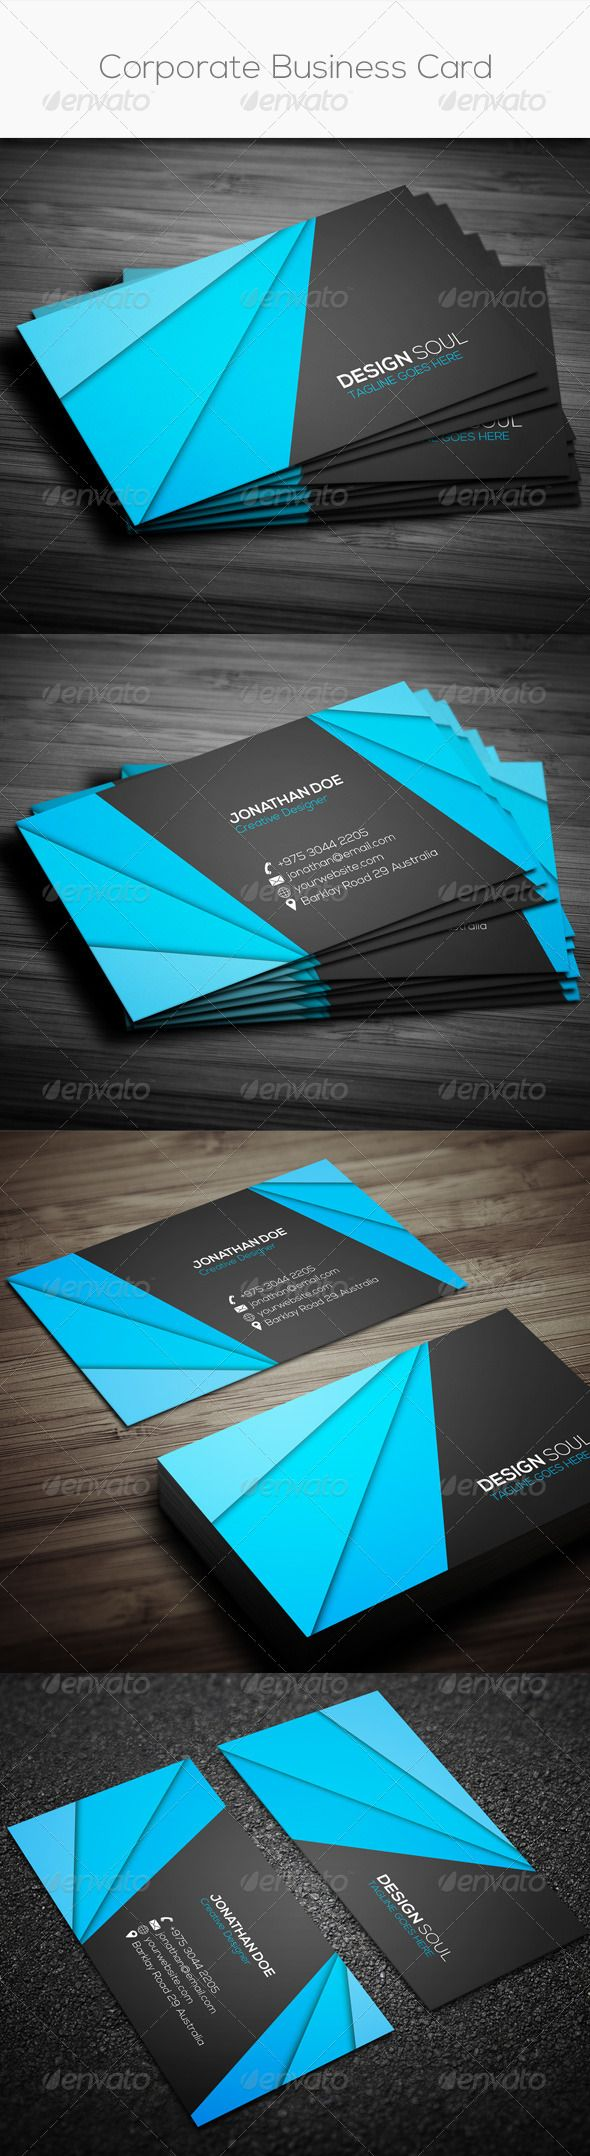 corporate business card psd print template download http